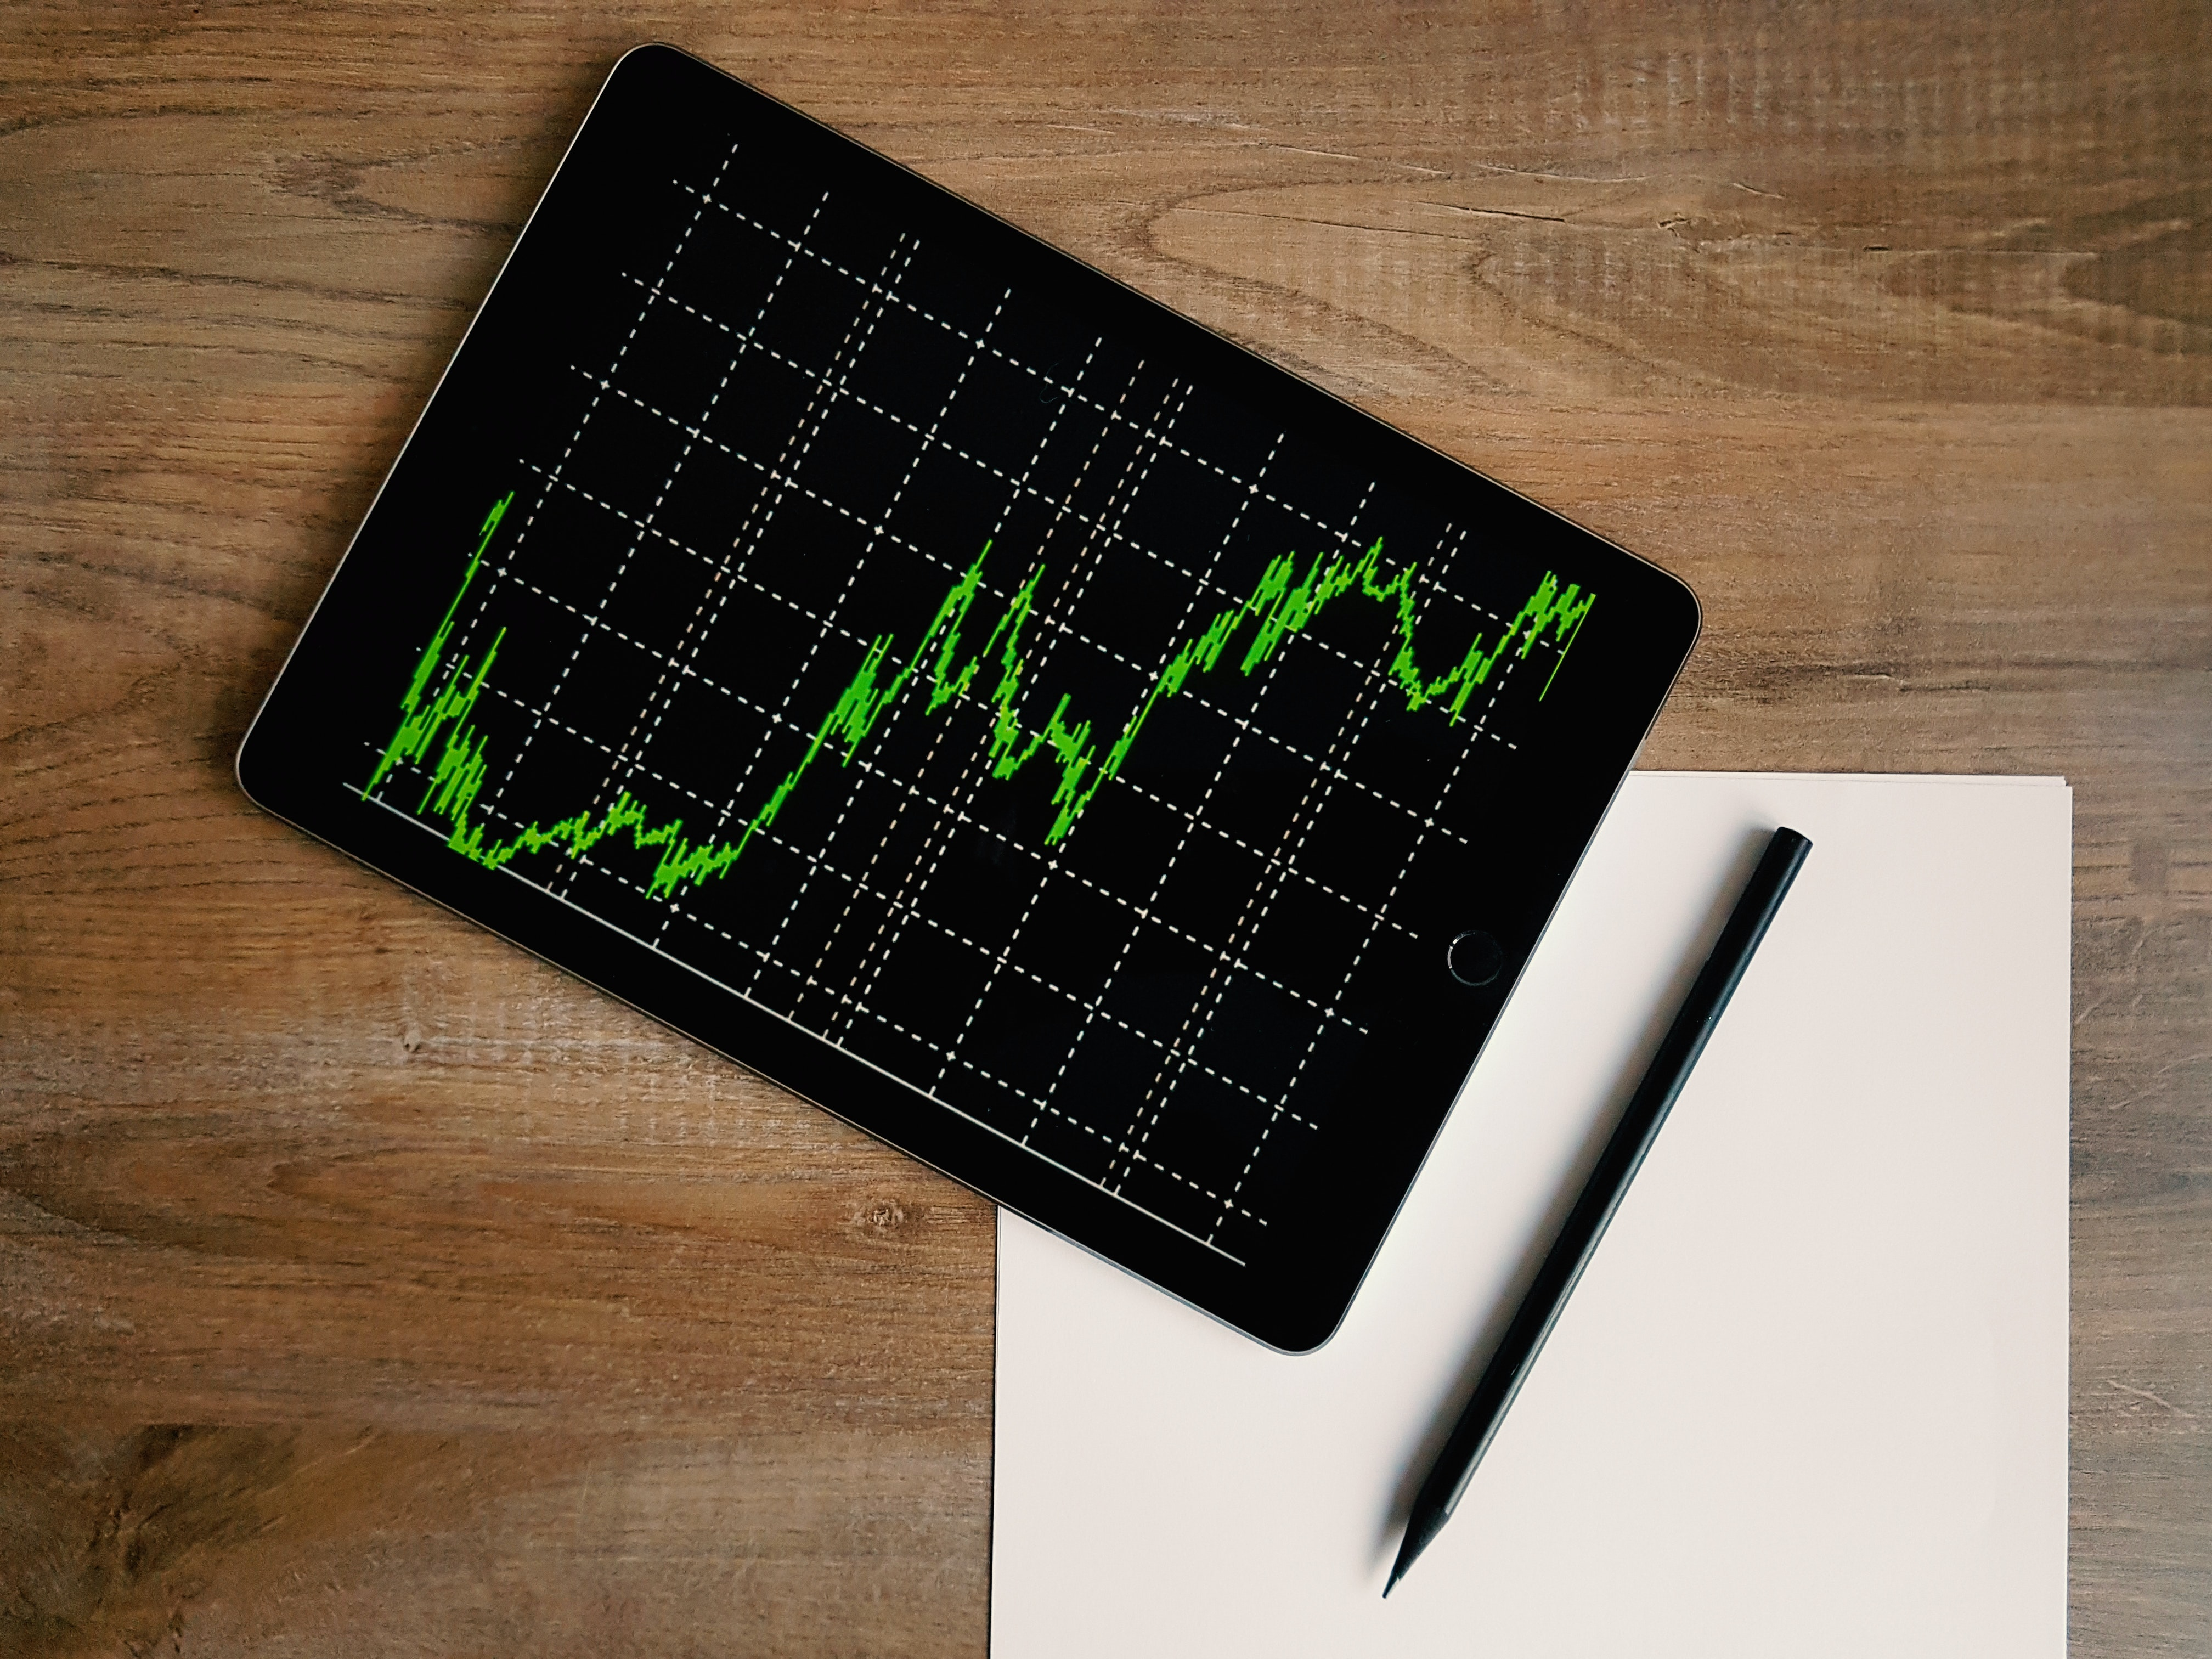 Managing your investments during difficult times